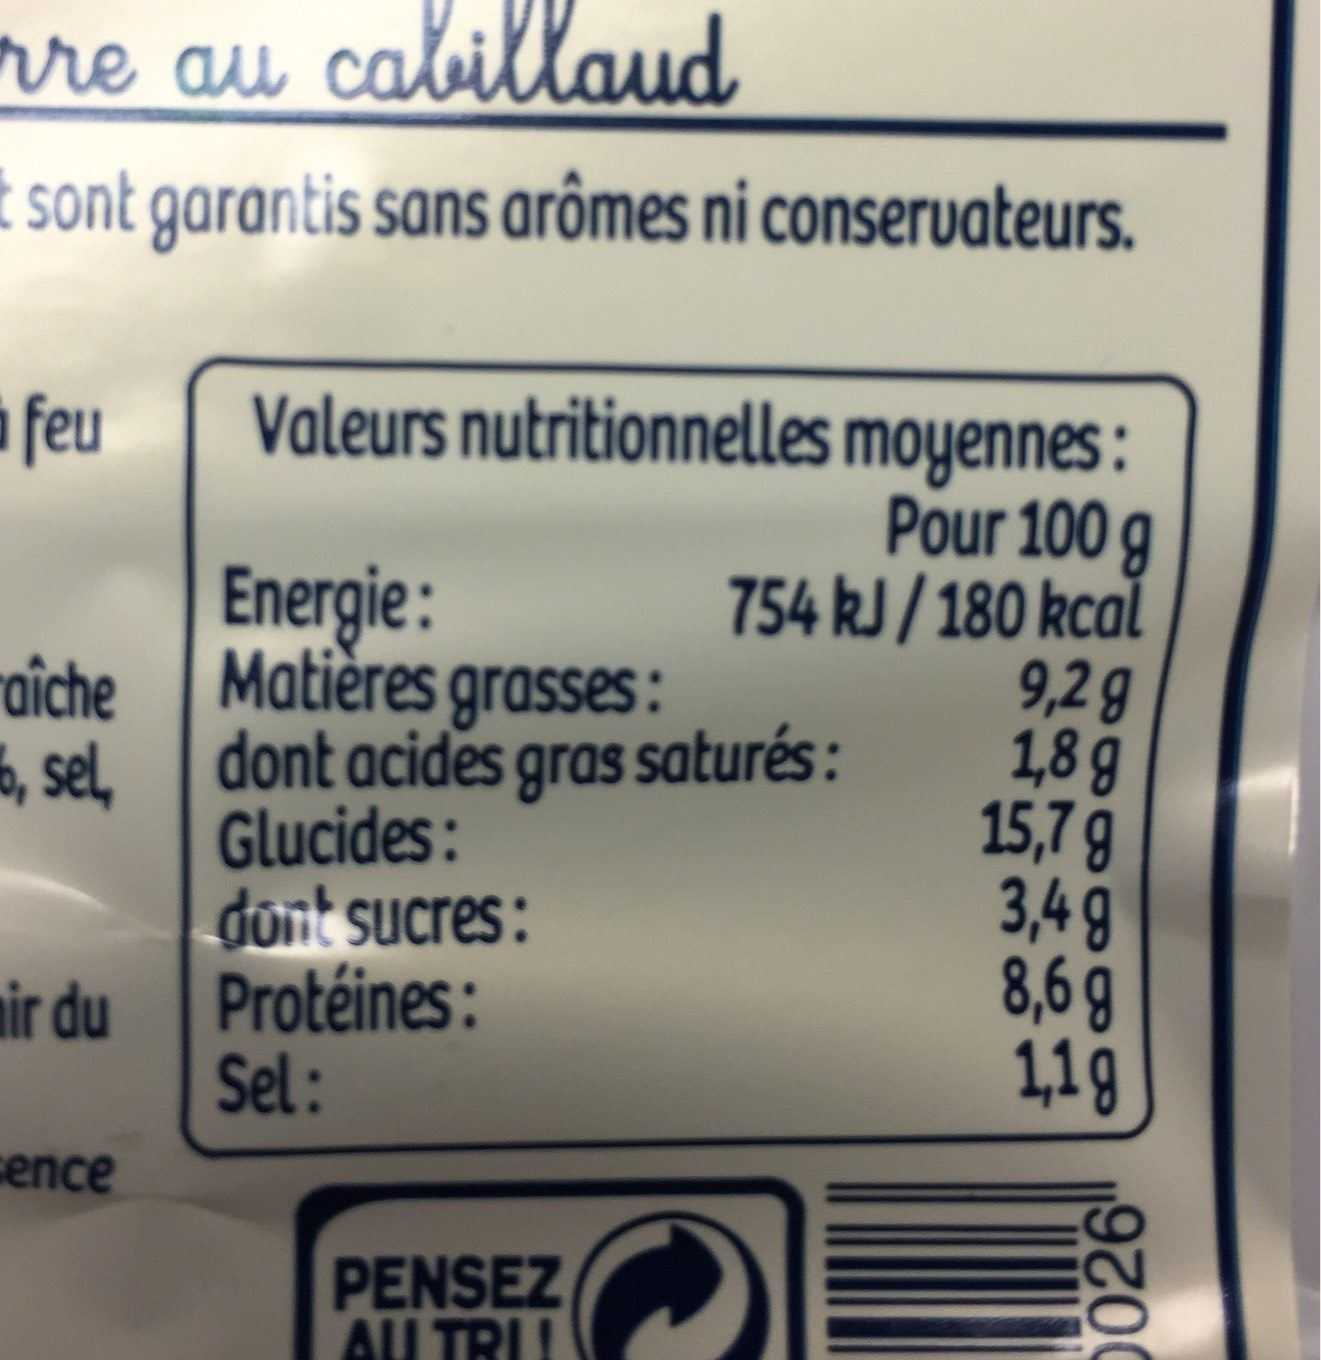 4 Croques Cabillaud - Informations nutritionnelles - fr